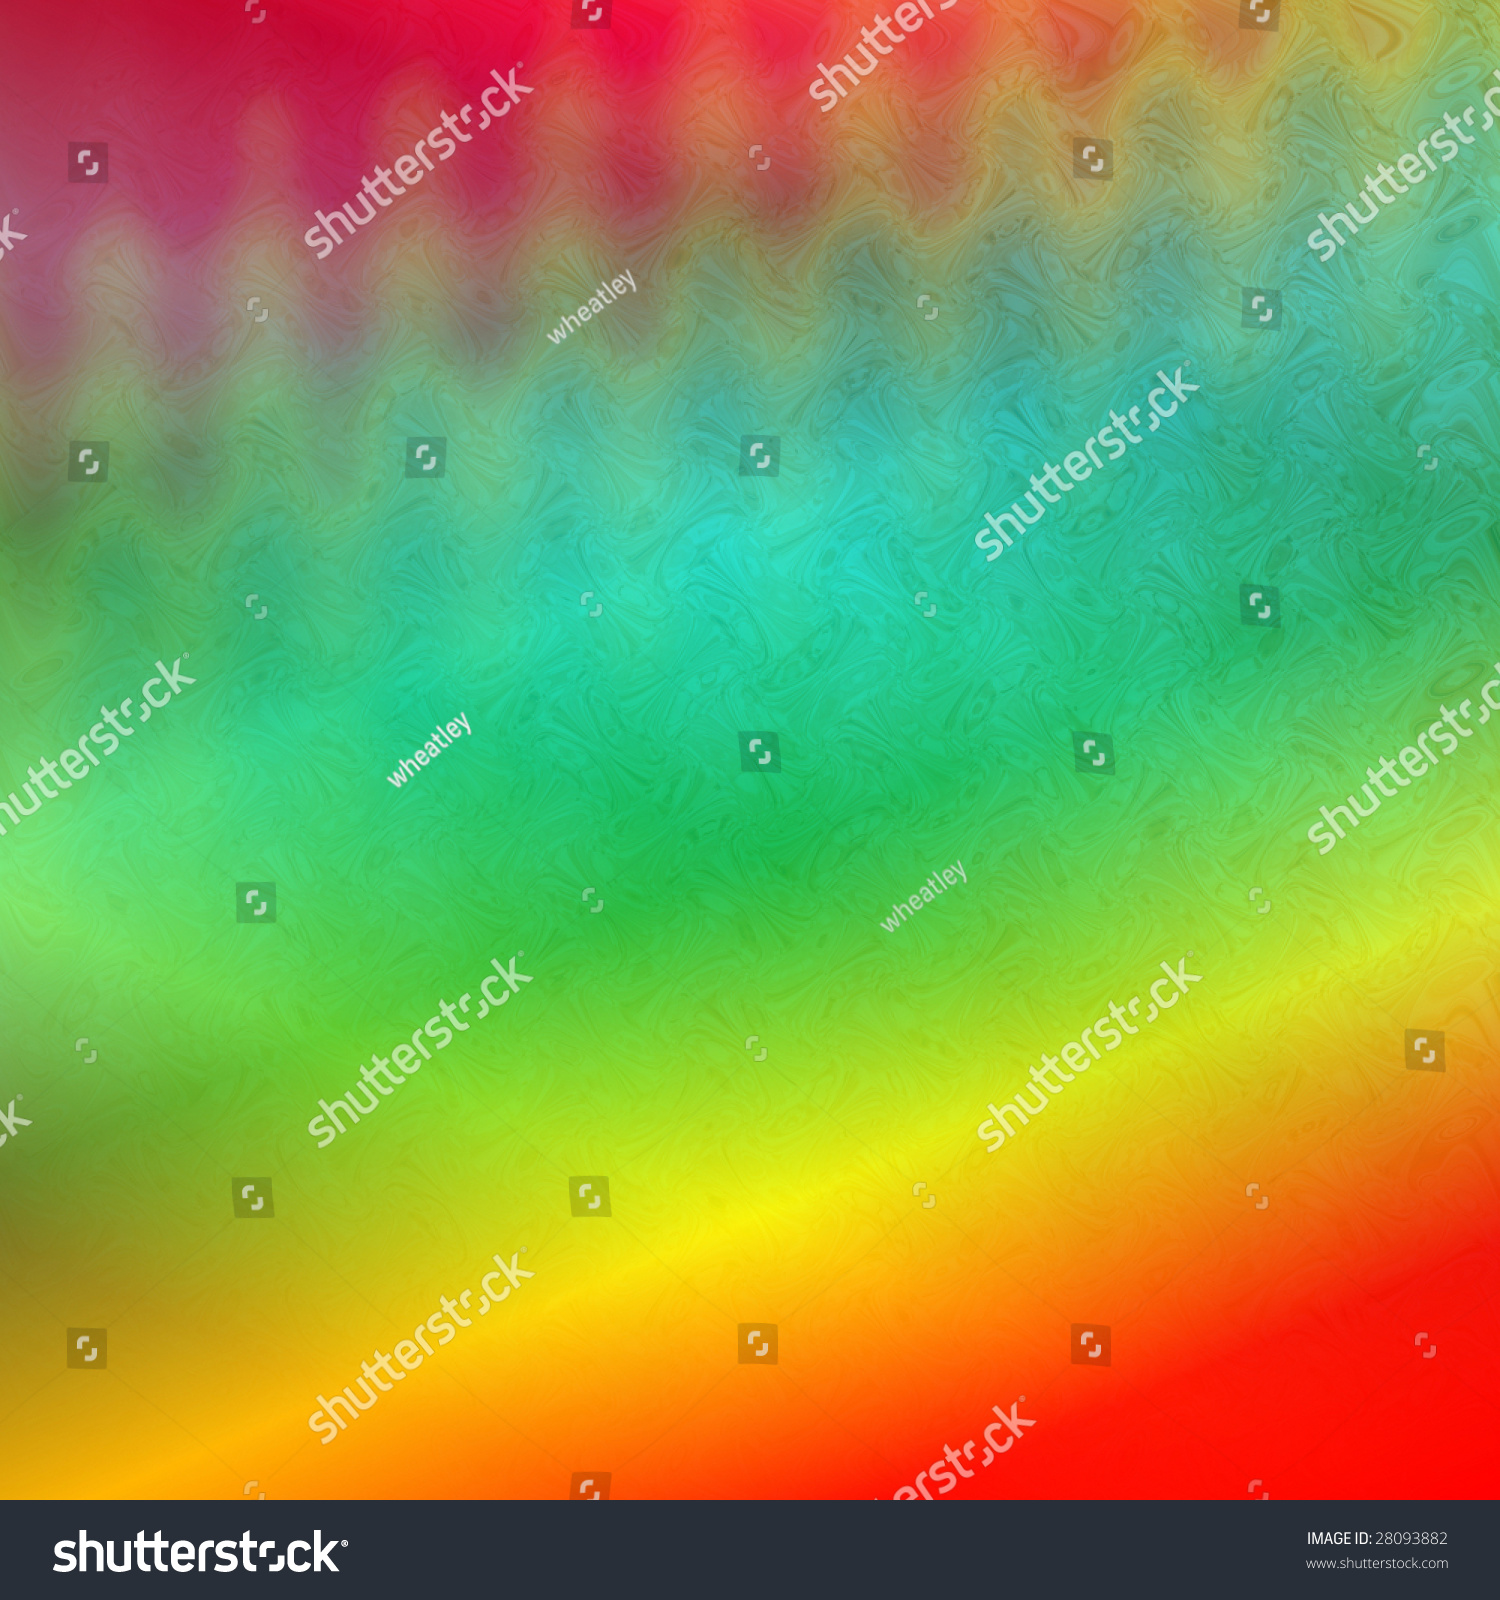 Colourful Spectrum Backgrounds For Use As Wallpapers Stock